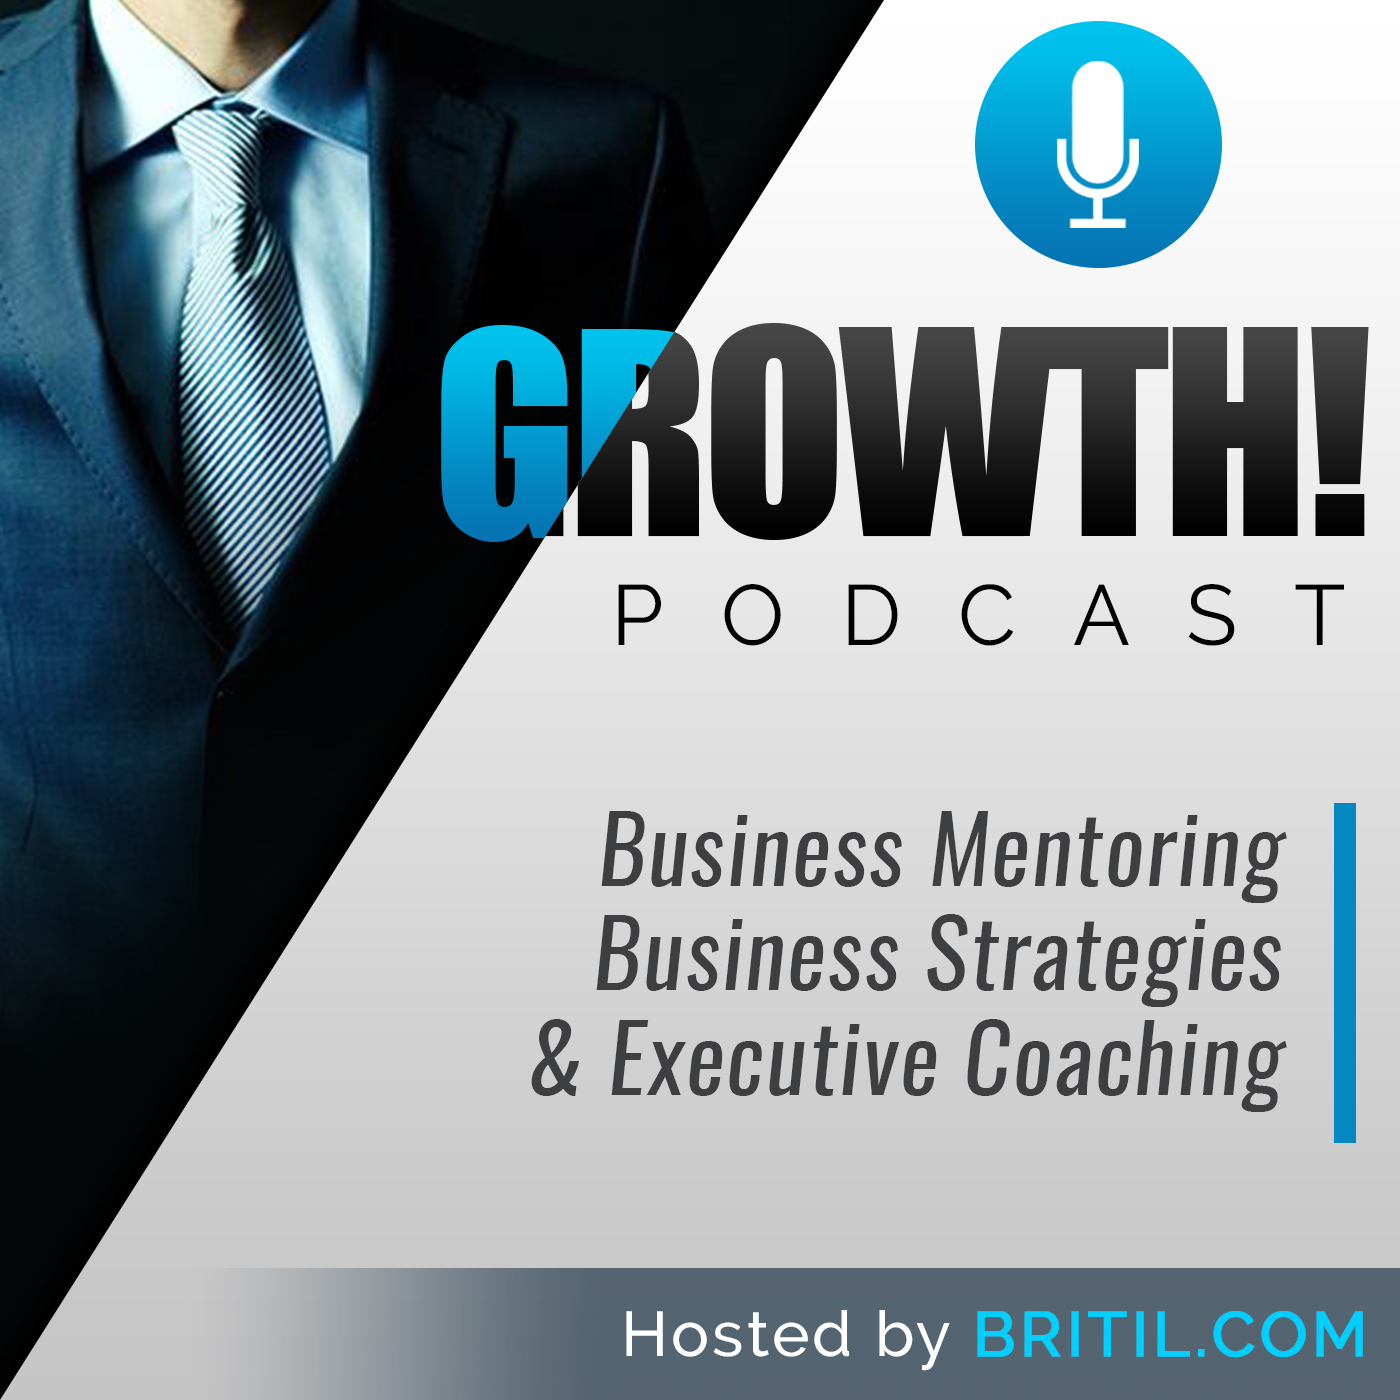 Business plan podcasts